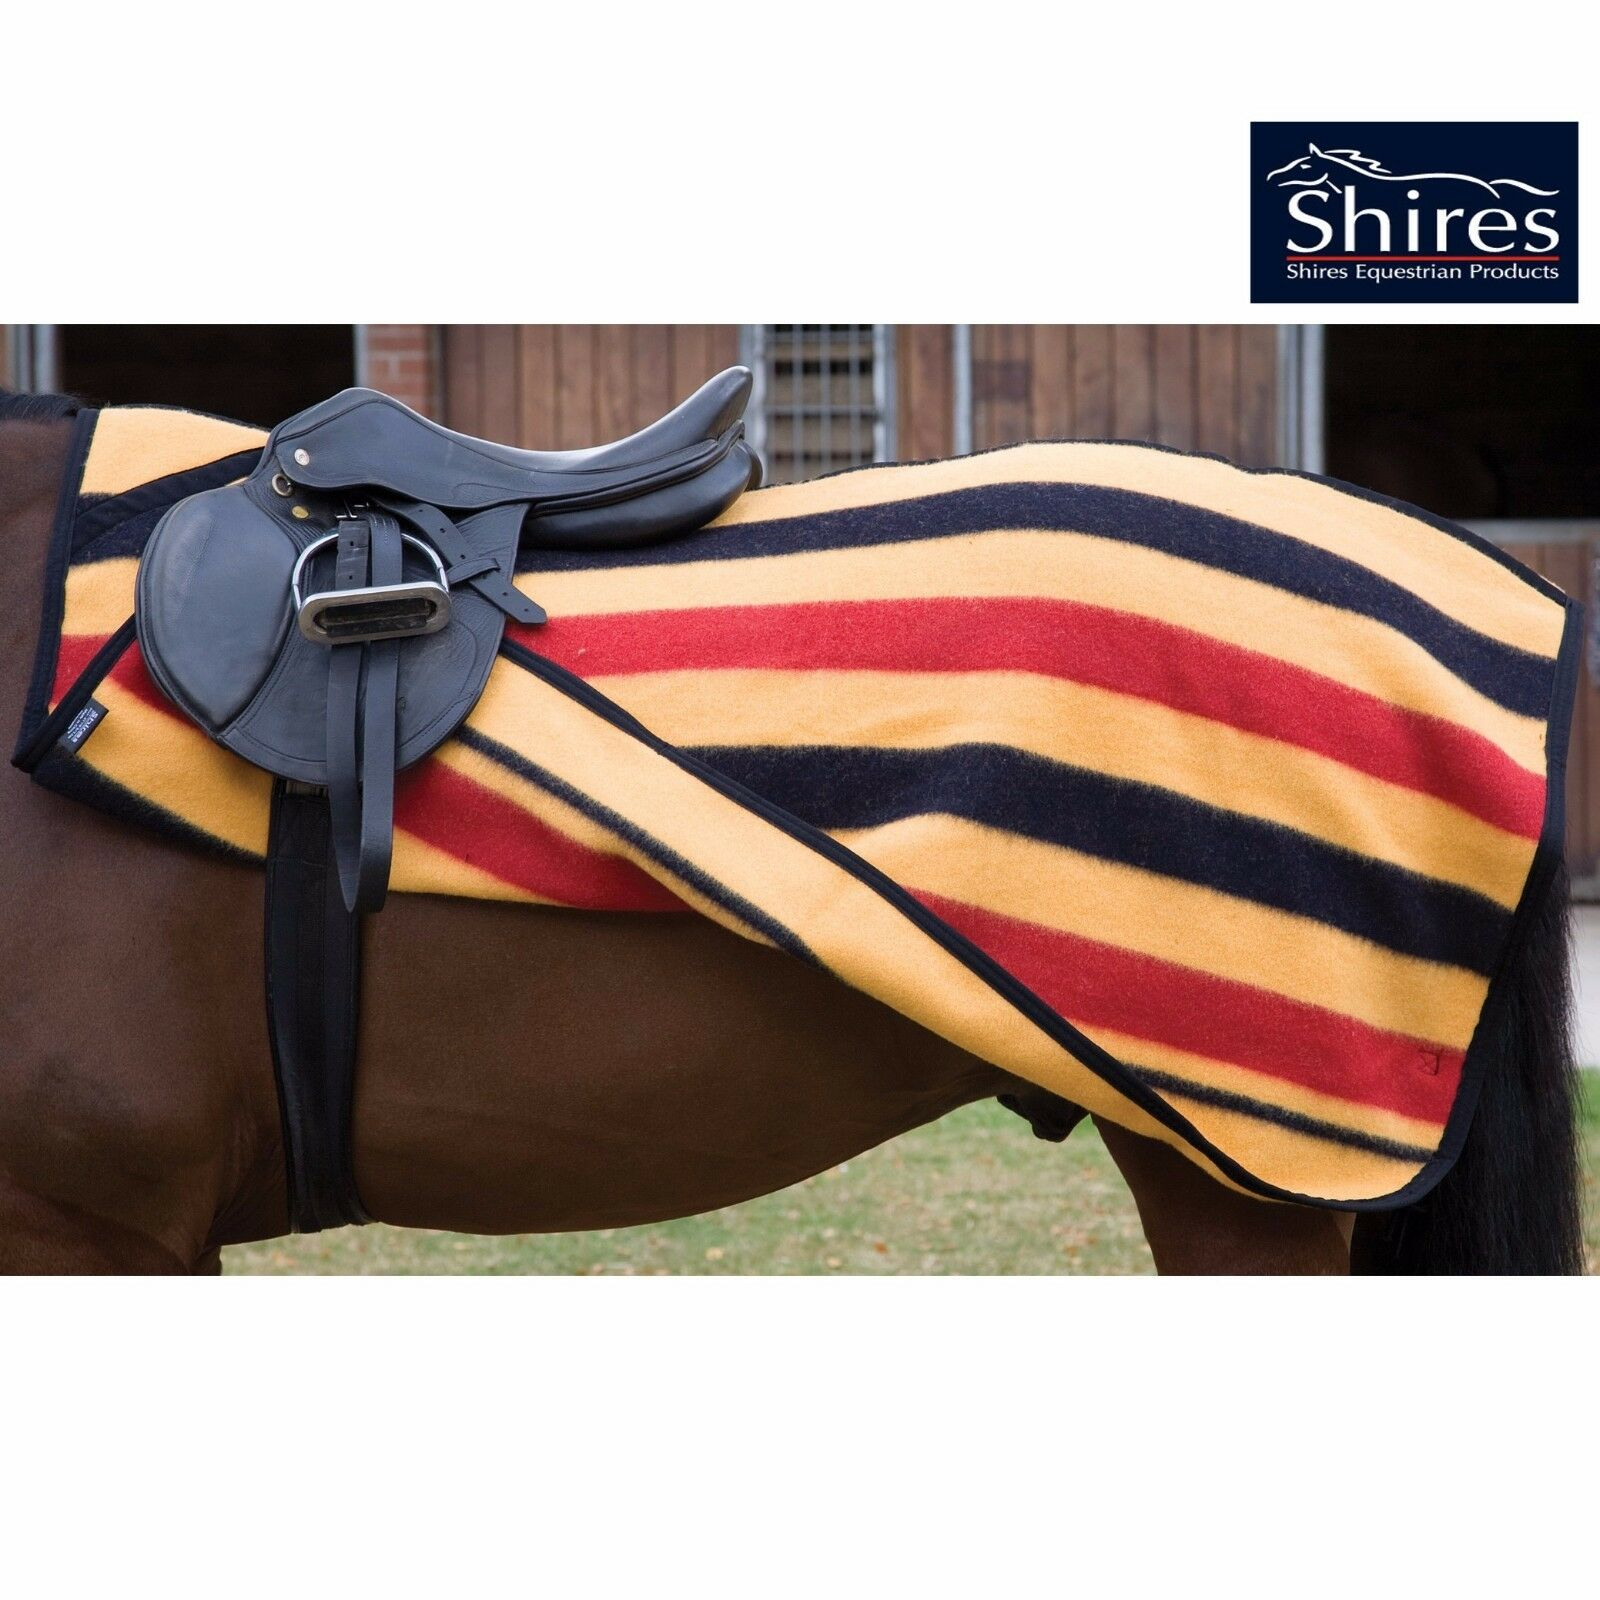 Shires Newmarket Exercise Sheet In Sizes 4'3 and 4'6